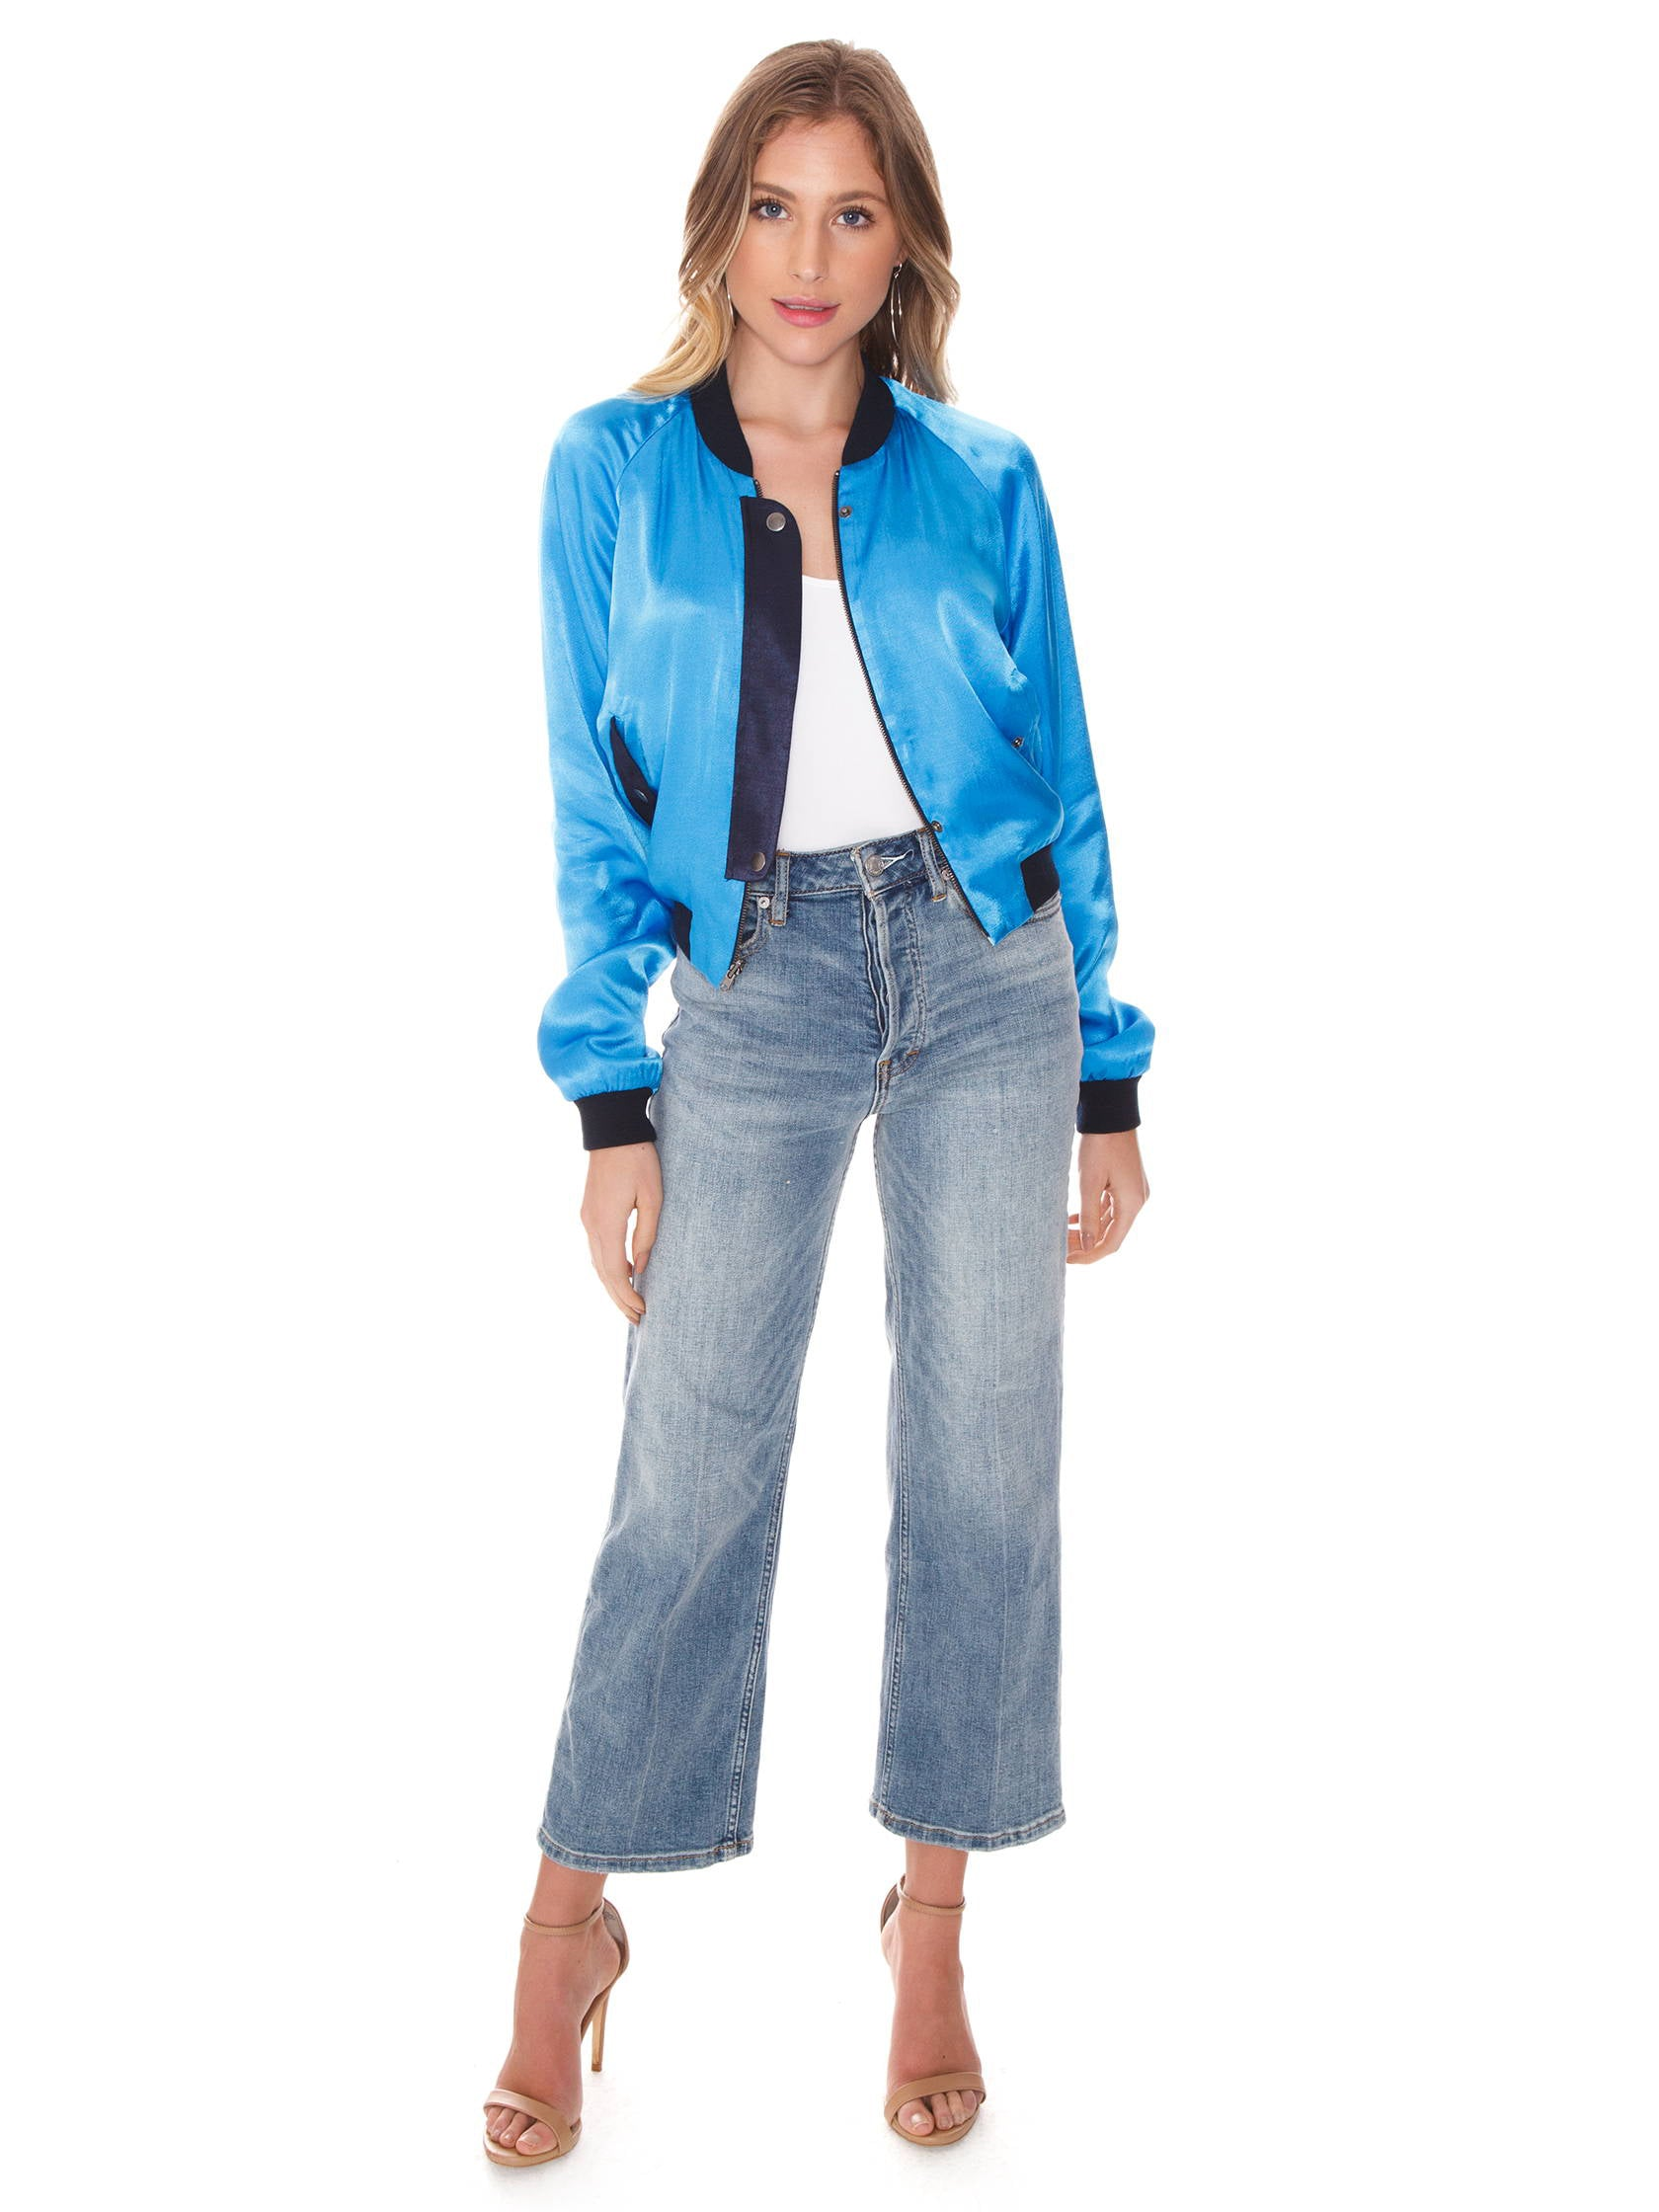 Girl outfit in a jacket rental from FLETCH called Blue Reversible Bomber